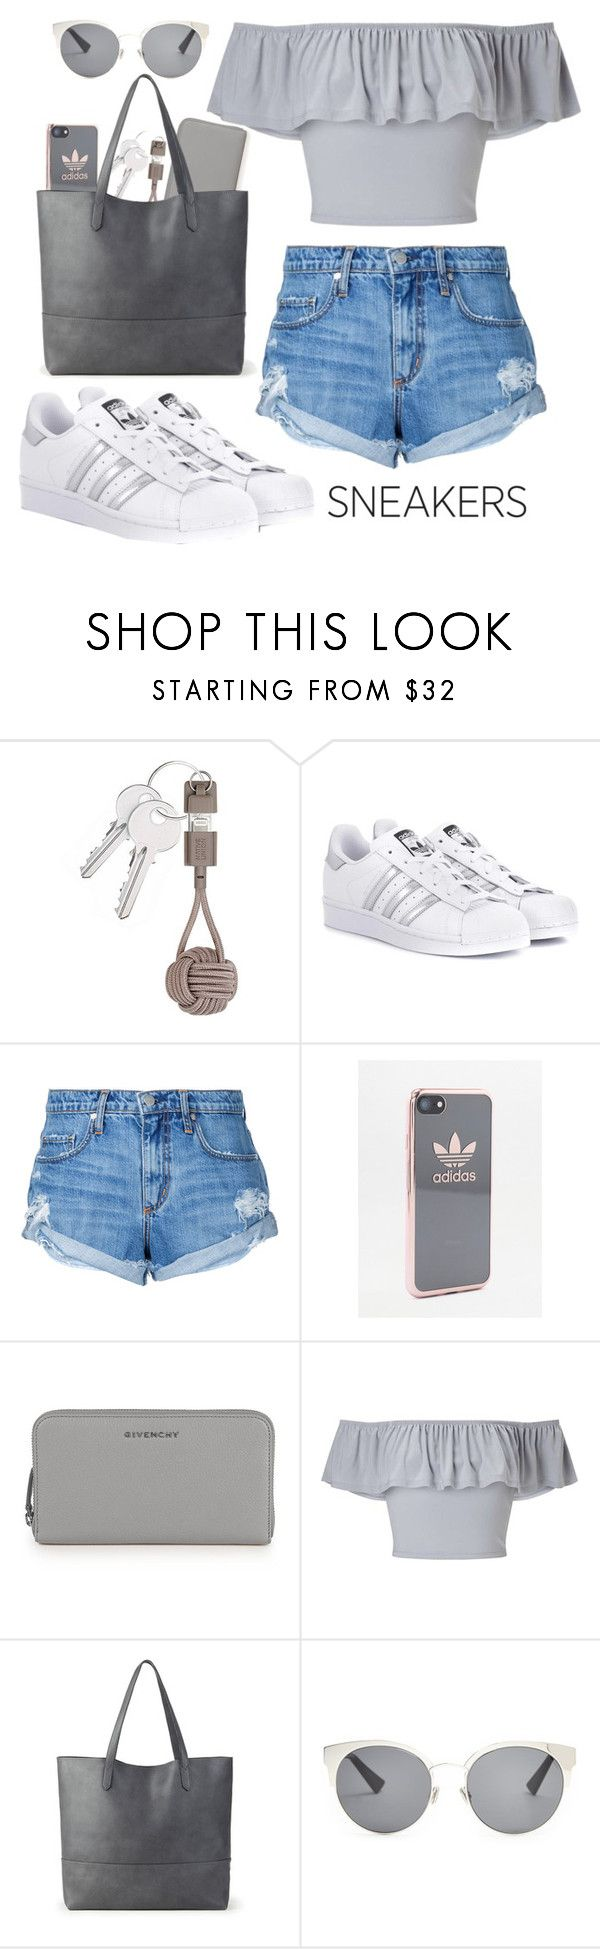 """""""White sneakers..👟"""" by terezamuskova ❤ liked on Polyvore featuring Native Union, adidas Originals, Nobody Denim, adidas, Givenchy, Miss Selfridge, Sole Society and Christian Dior"""